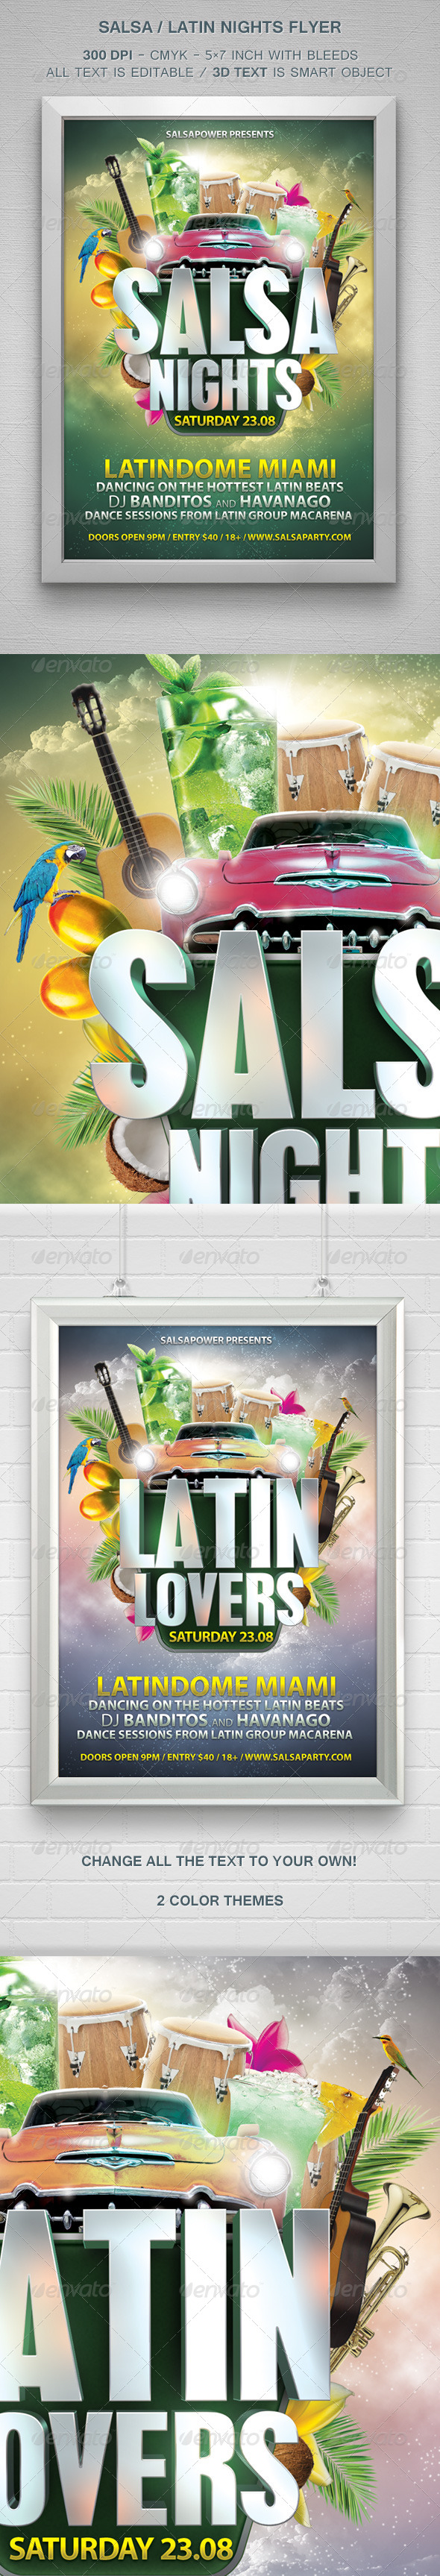 GraphicRiver Salsa Latin Nights Flyer 8286083